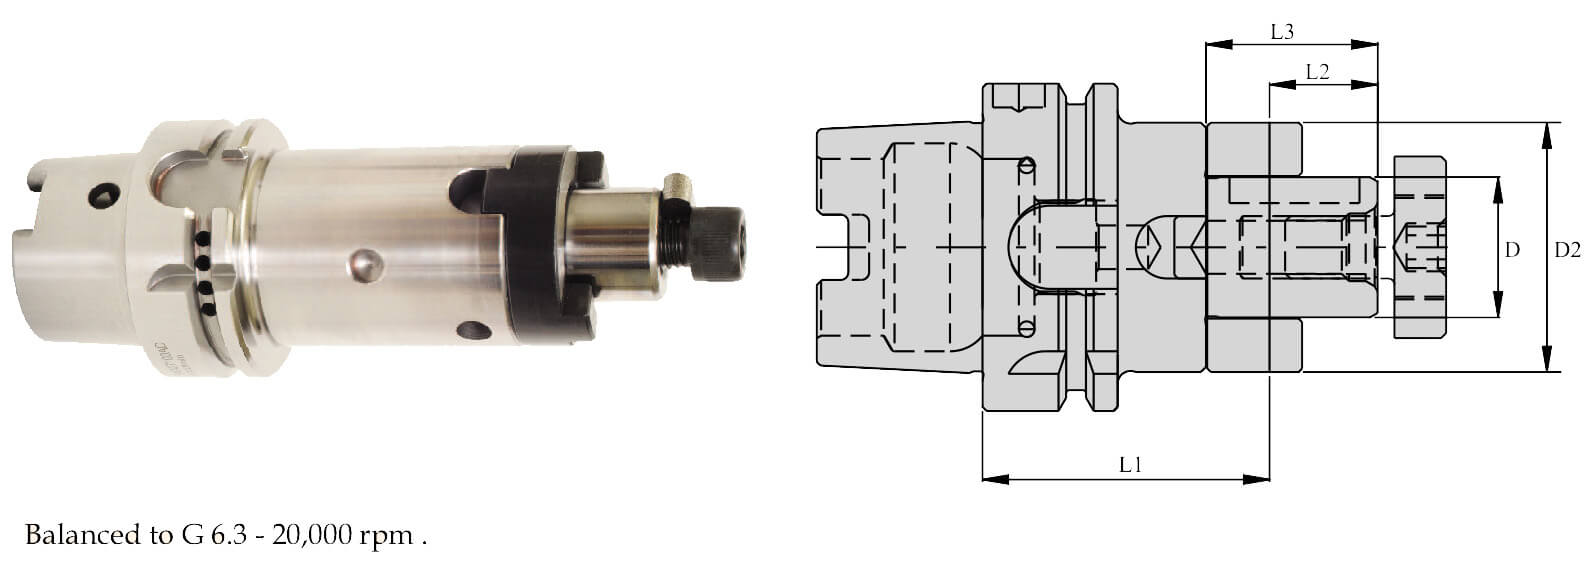 HSK-A 50 CSMA27 065 CombiShell Mill Adaptor (Balanced to G 6.3 20000 RPM) (DIN 6358)